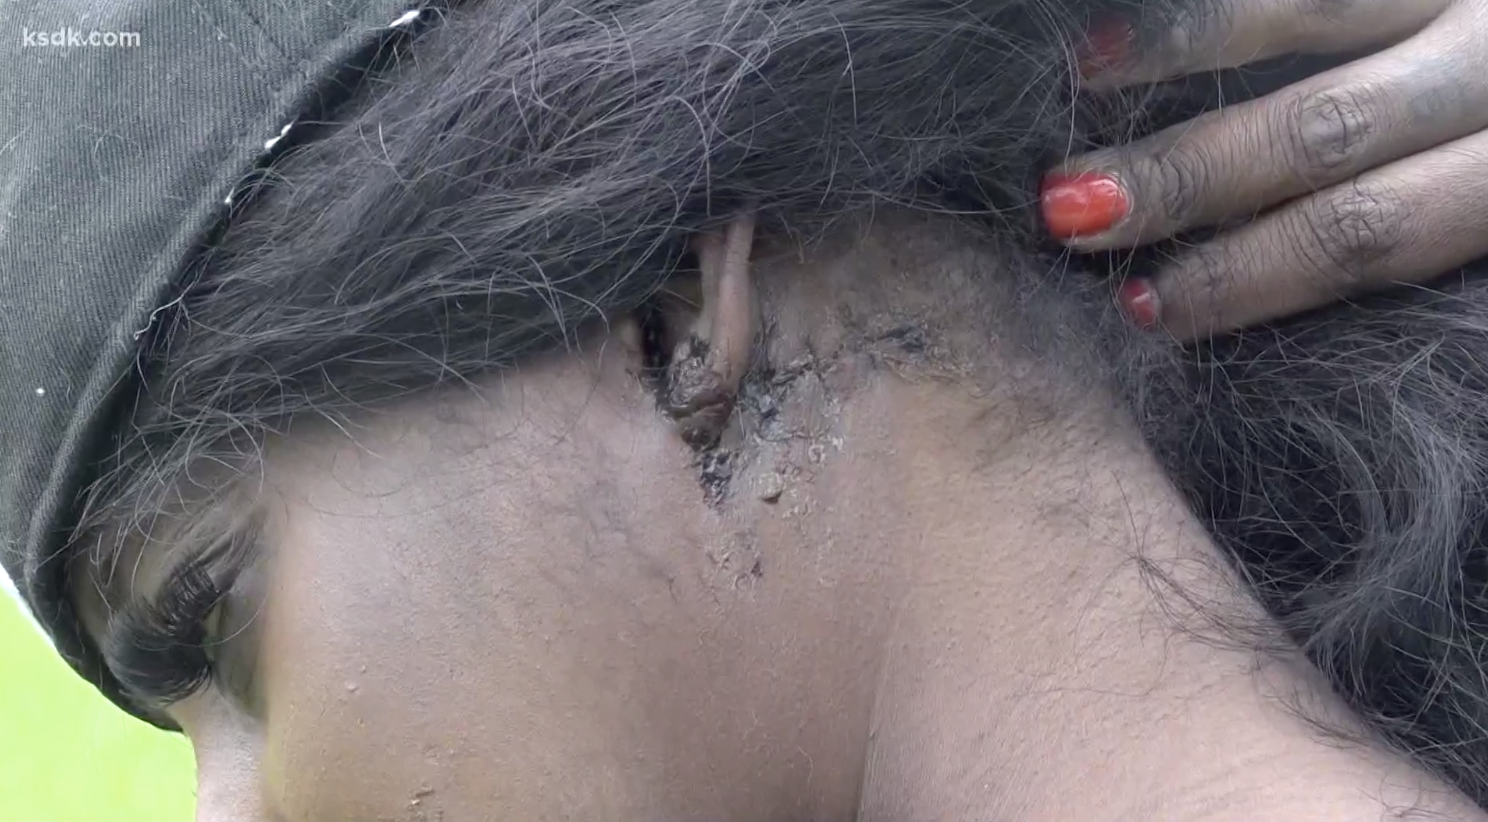 April Brown shows wounds sustained after being pistol whipped by Adam Lee Pillow